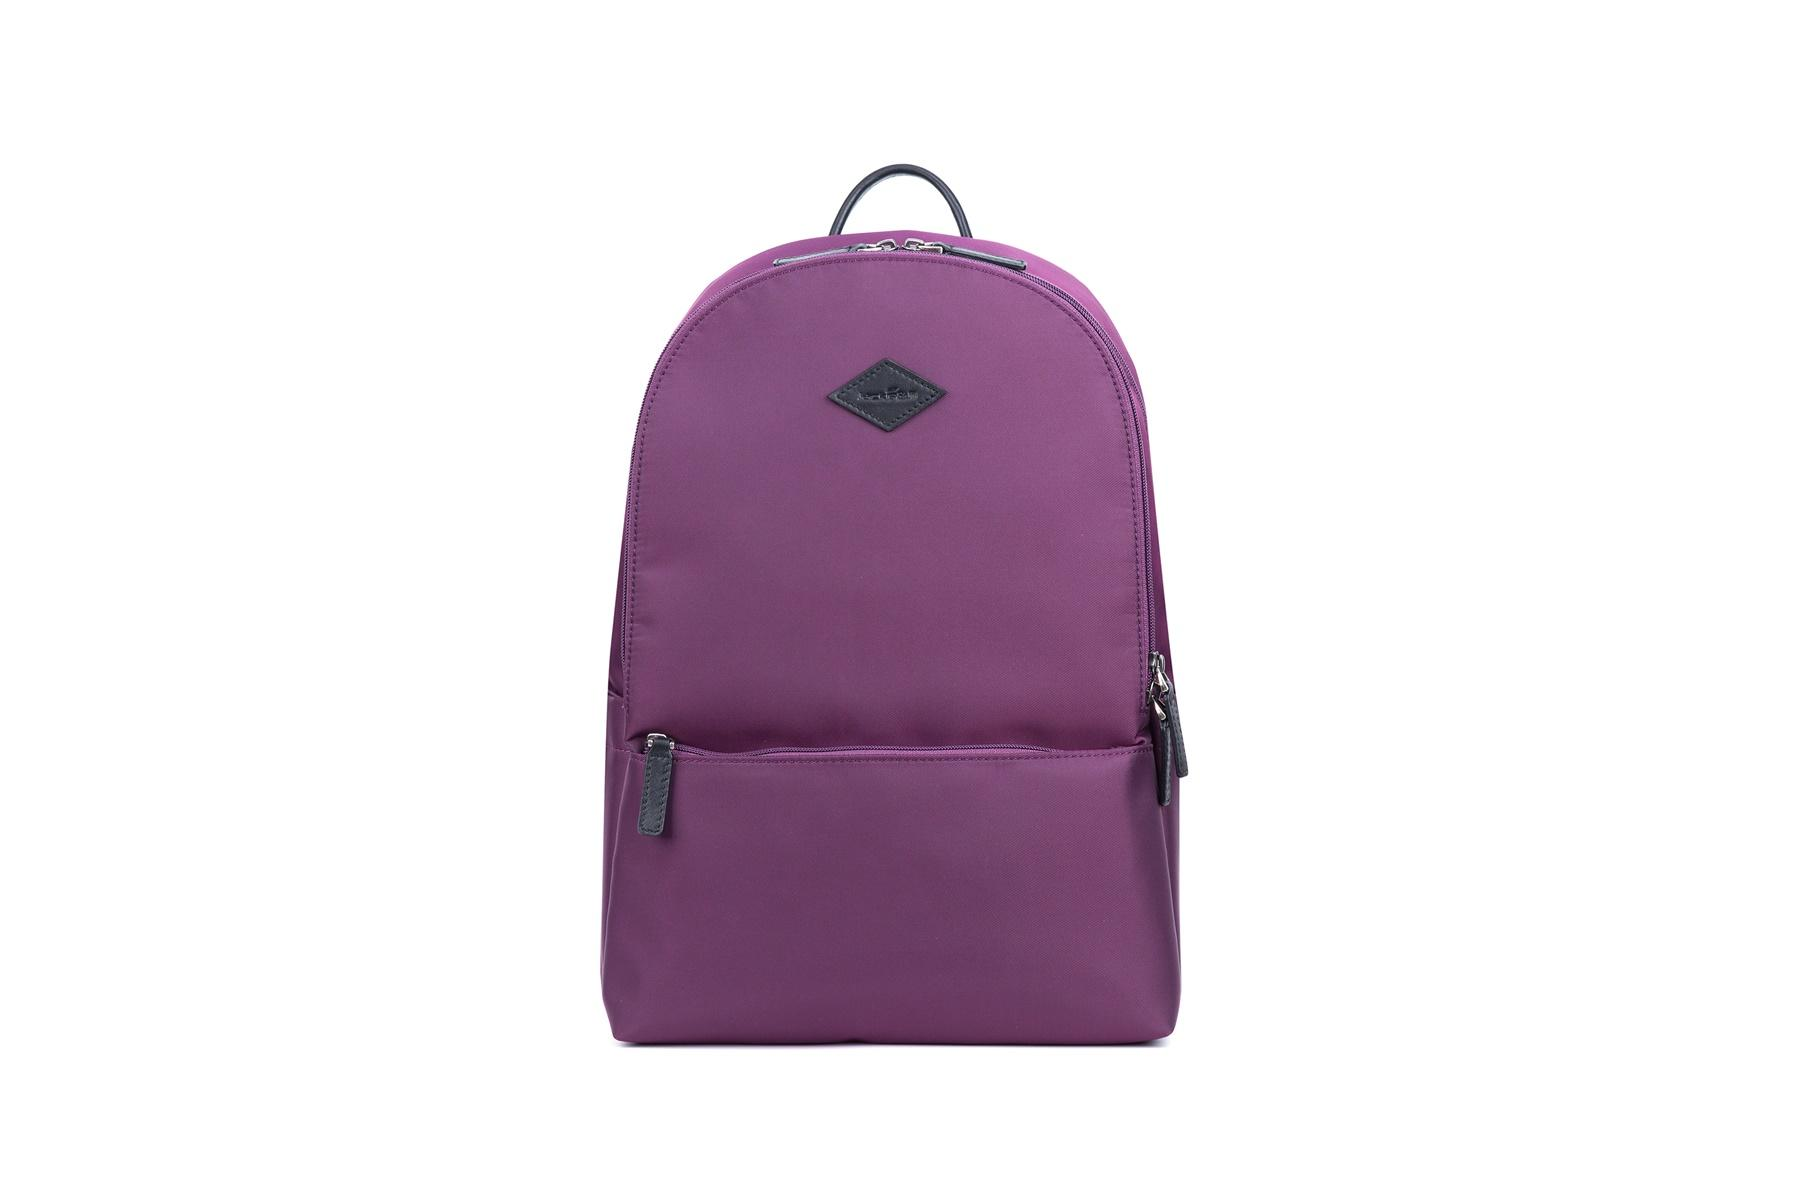 GF bags cover stylish backpacks leather for school